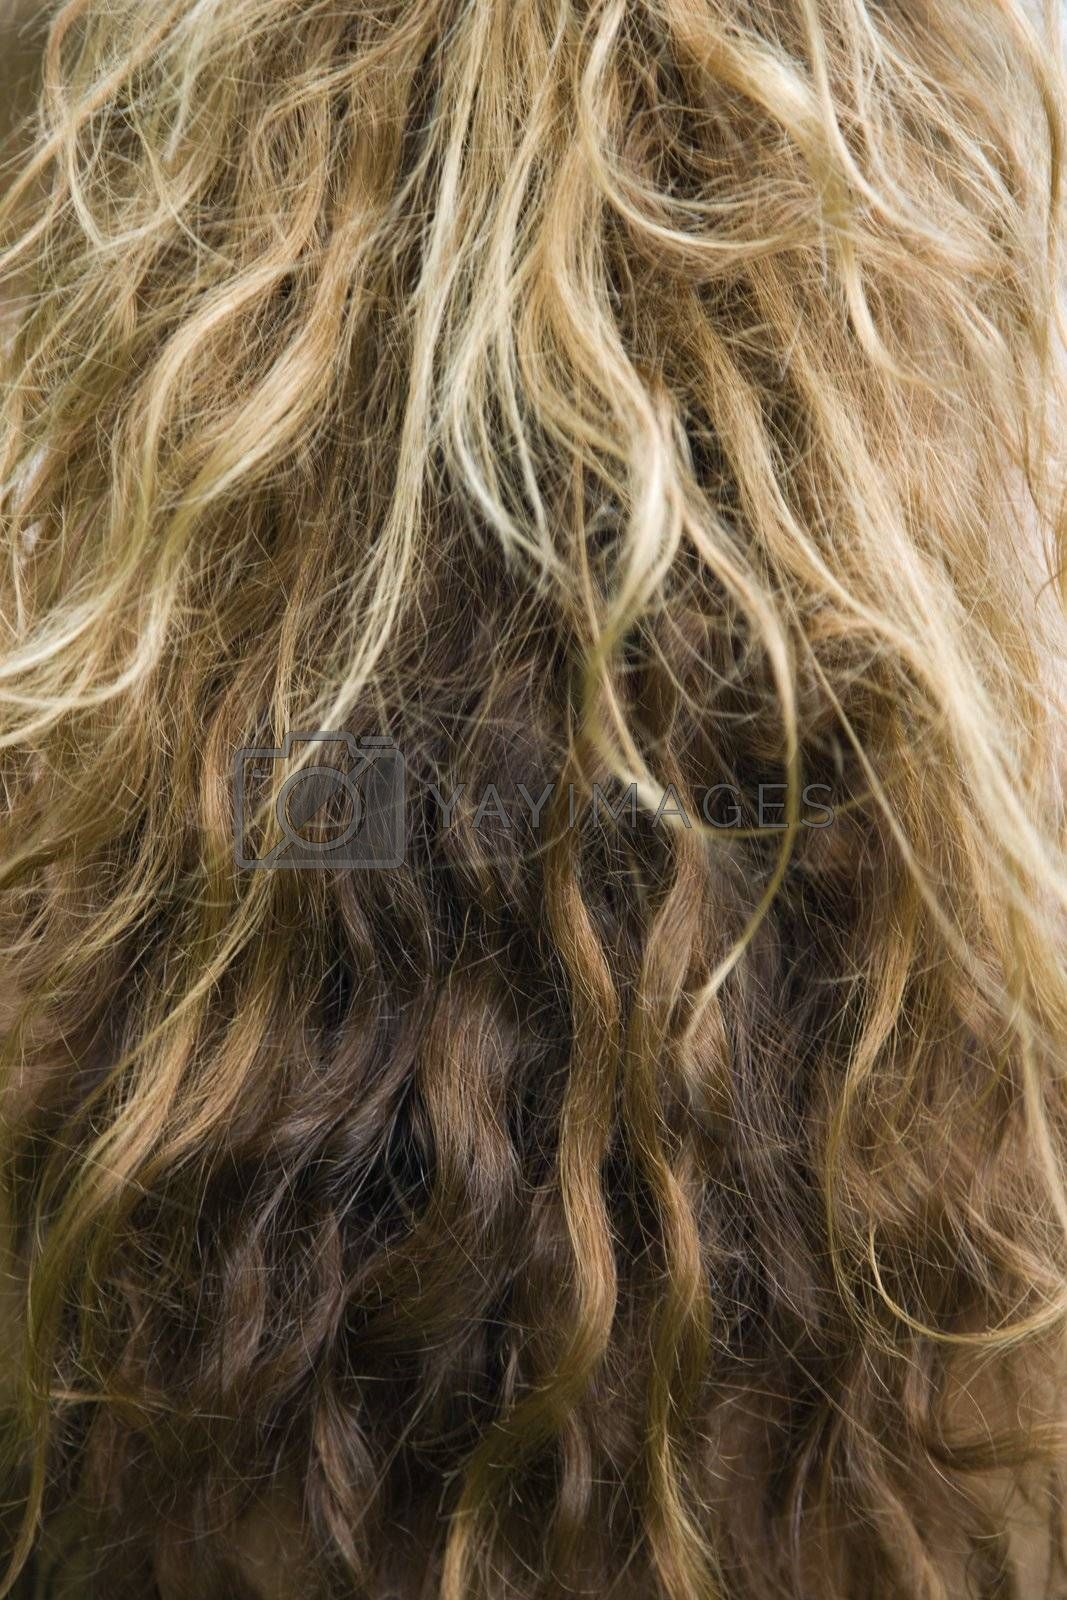 Close up of wavy dirty blond hair texture.